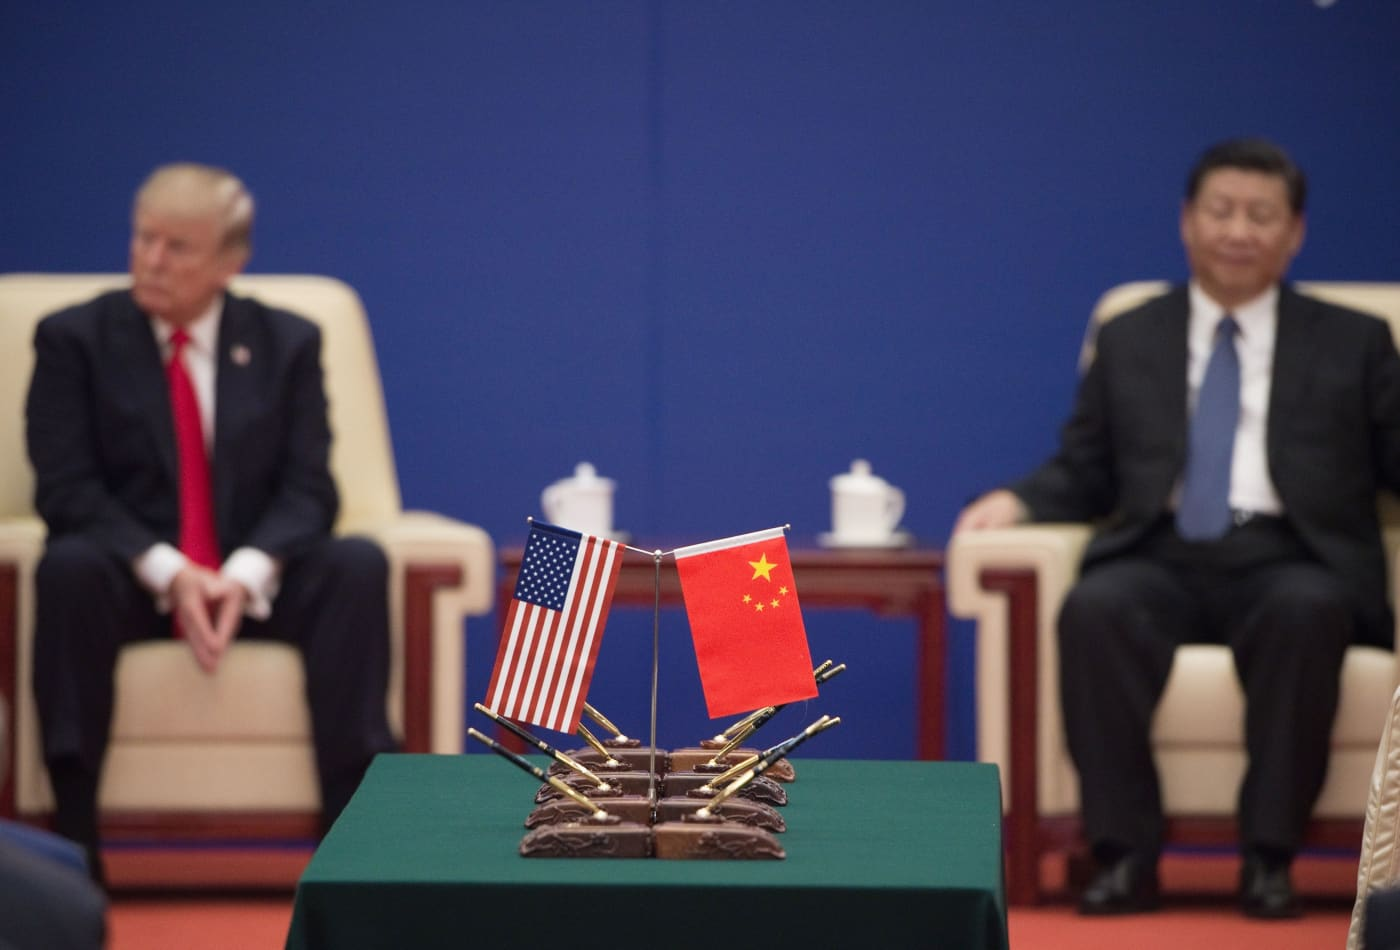 The U.S. and China could slip into a 'new cold war' that pushes countries to pick sides